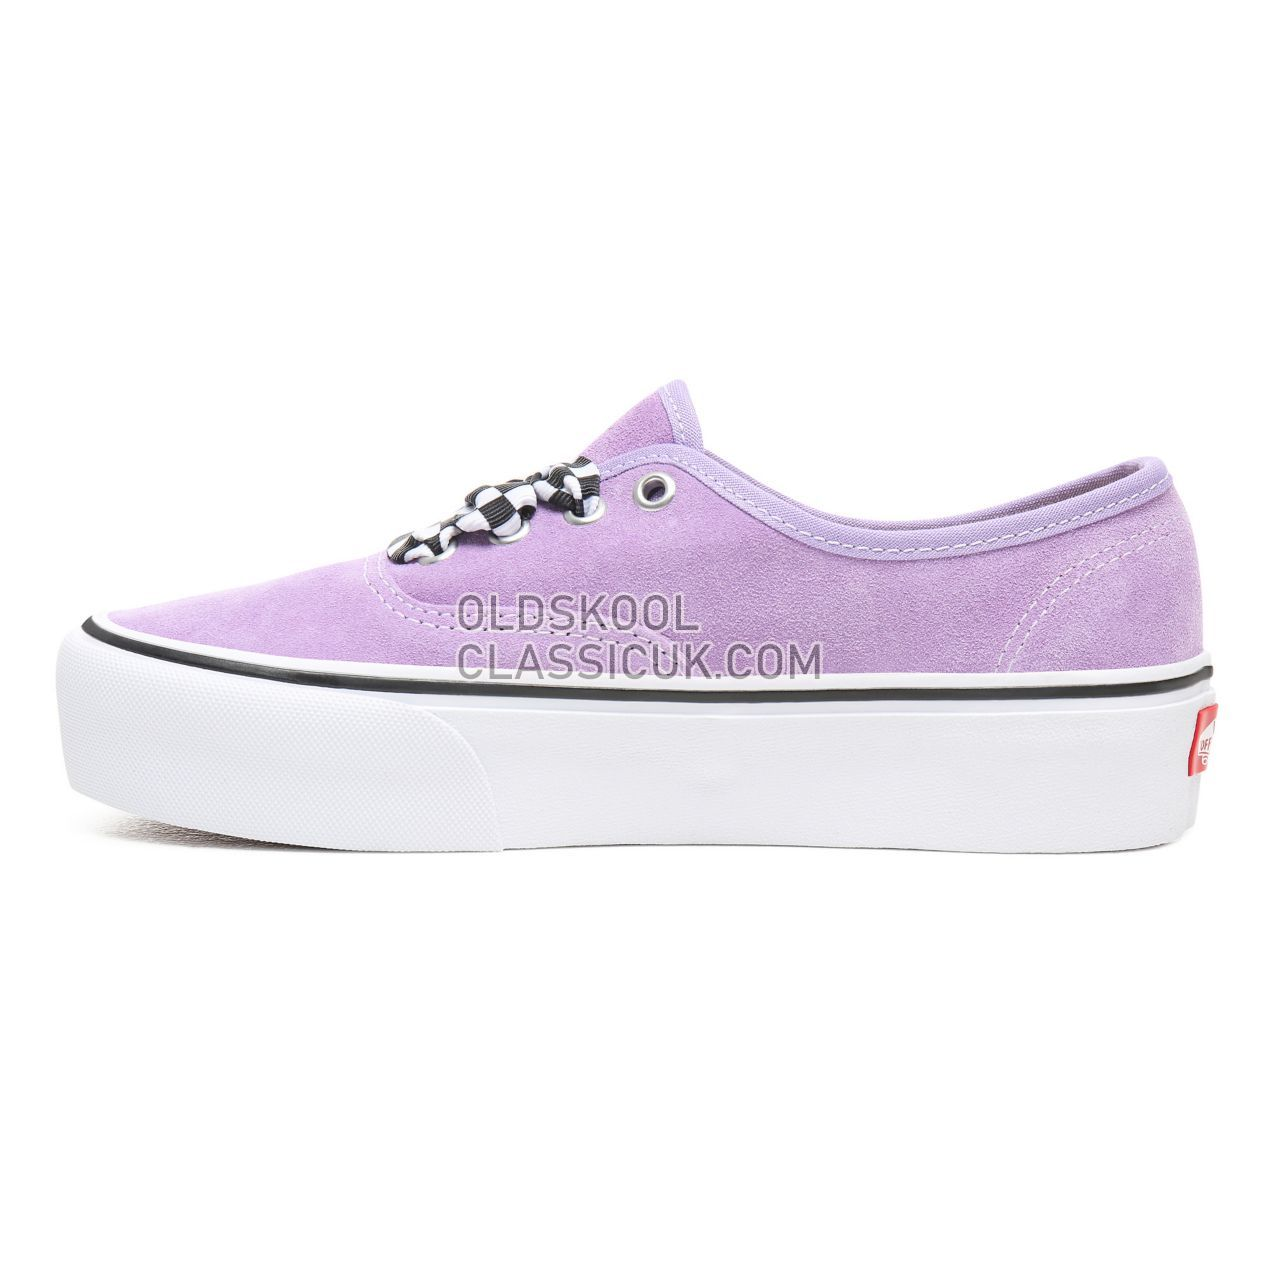 4ed32ede1085f2 ... Vans Checkerboard Lace Authentic Platform 2.0 Sneakers Womens ( Checkerboard Lace) Violet Tulip True ...